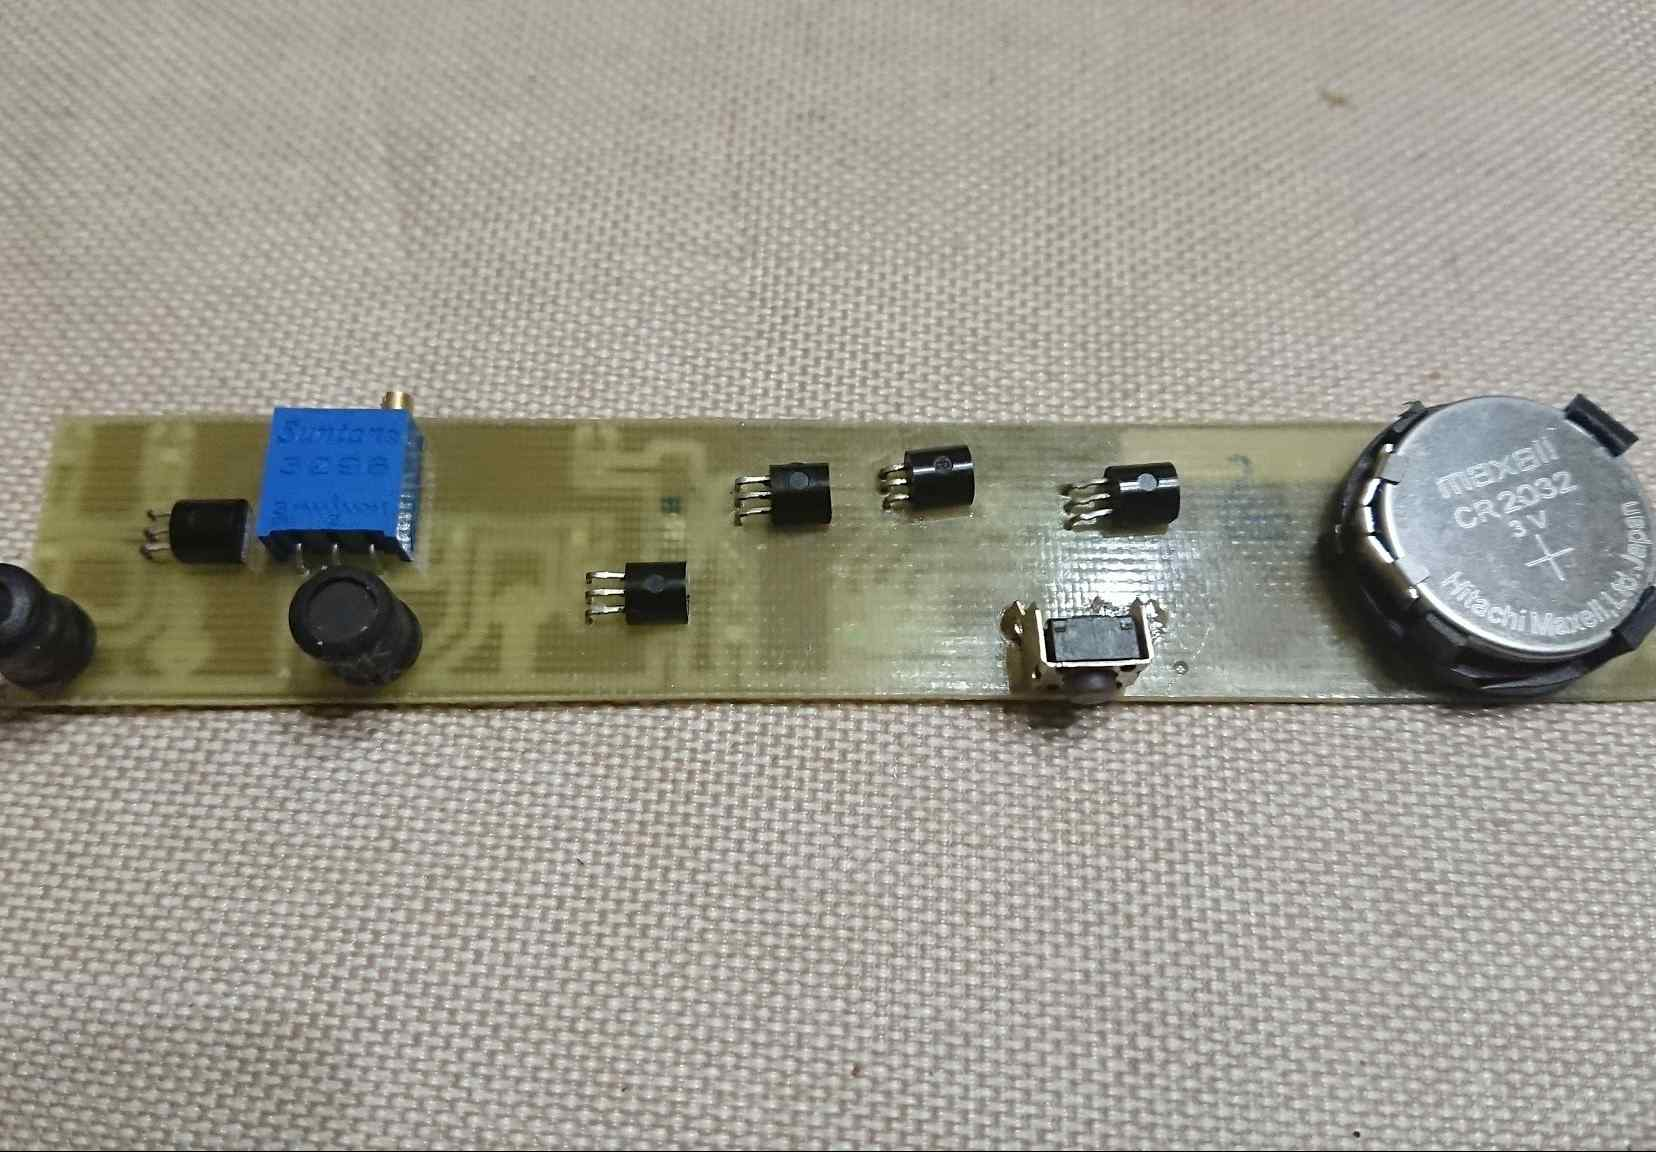 Circuit Output Search Easyeda For 5 Led Chaser Using 555 Chip Electronics Forum Circuits Inter Coil Short Detector